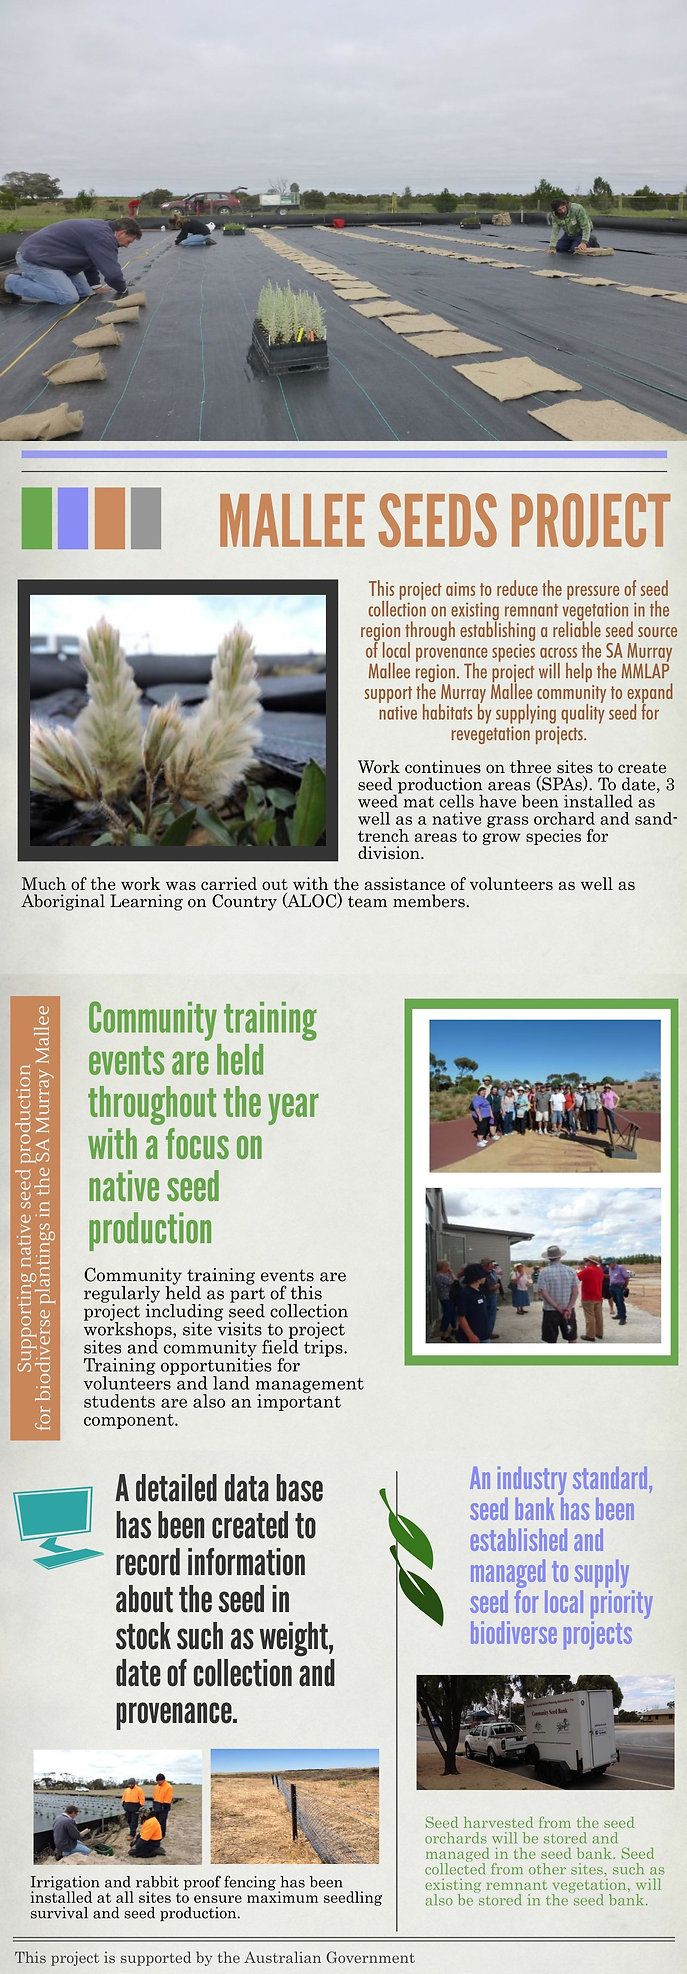 SA Murray Mallee, seed production area, seed orchard, seed bank, infographic